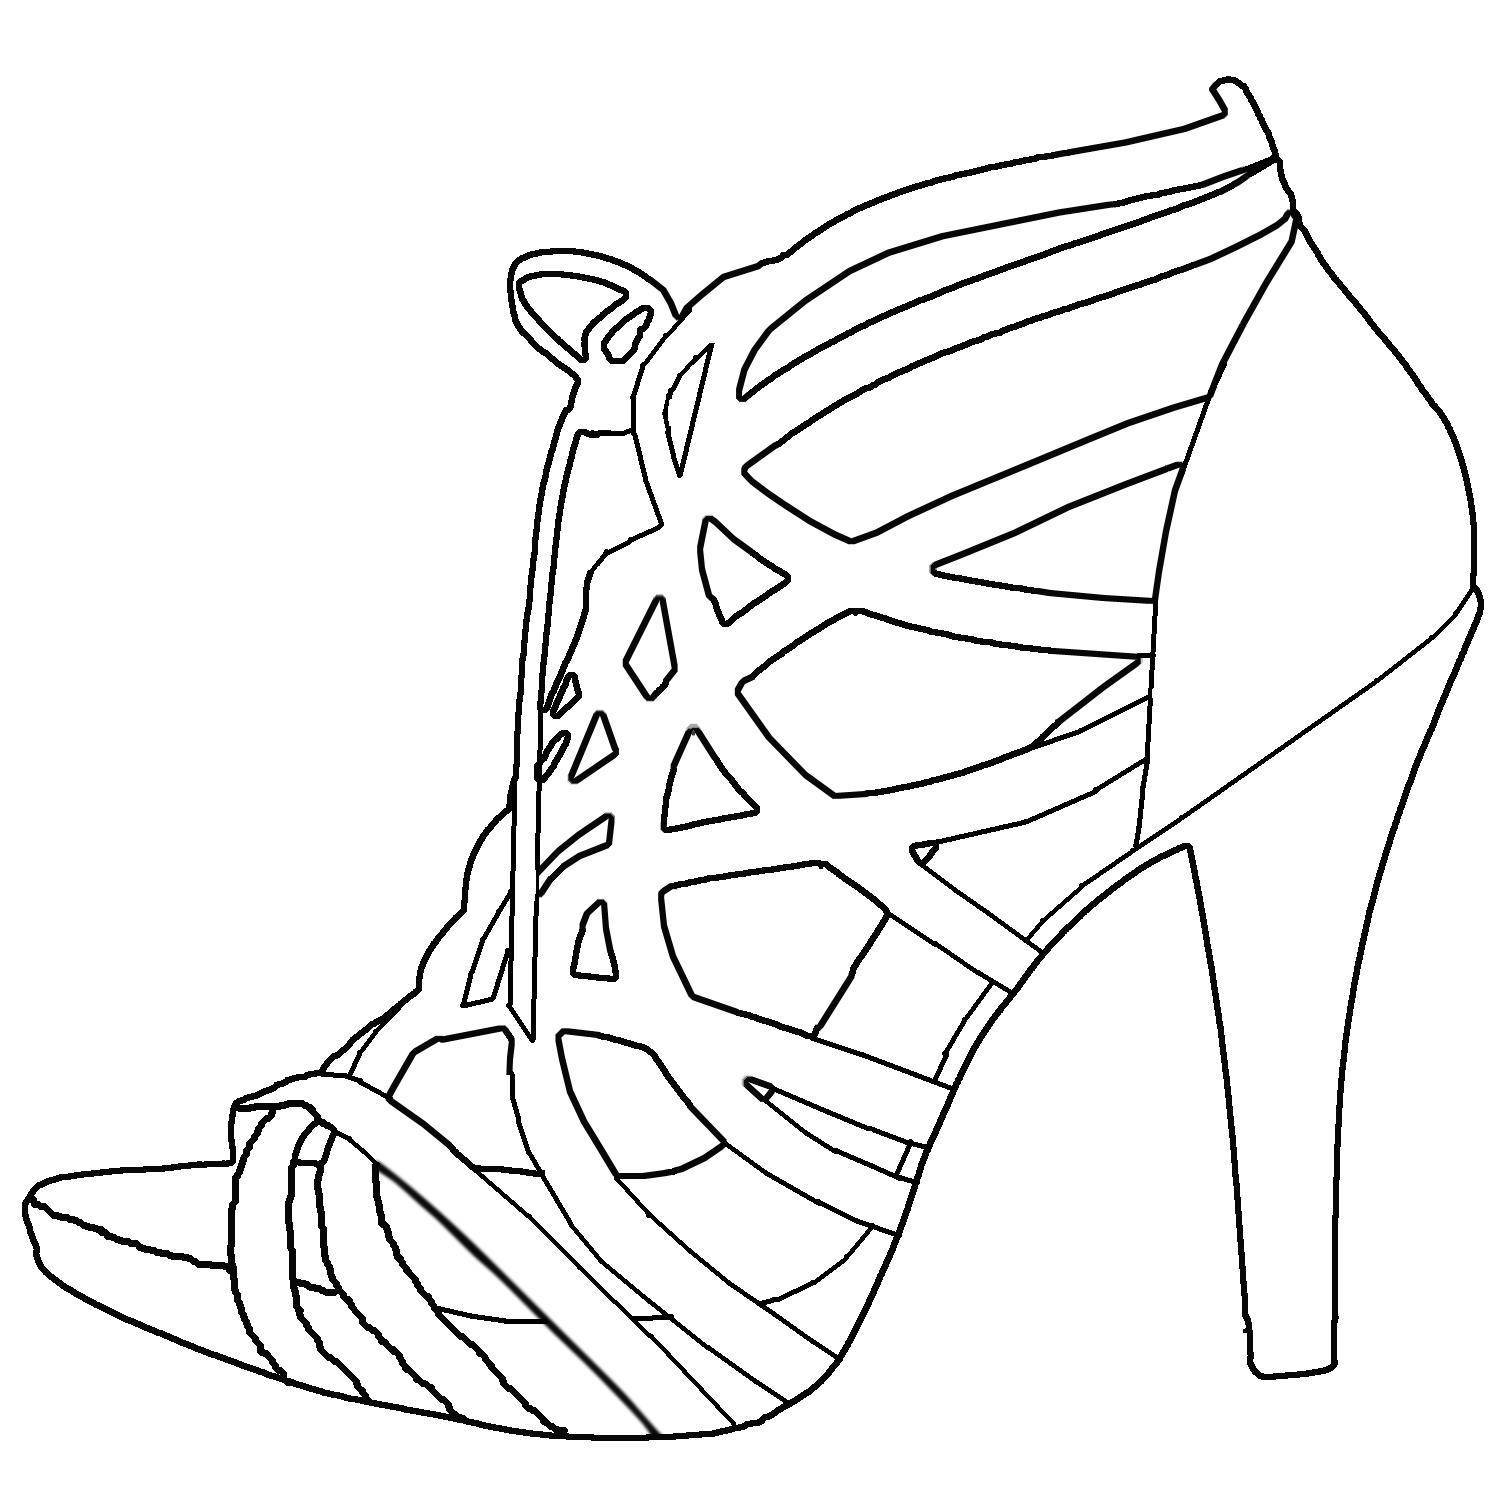 shoes for coloring shoe coloring pages to download and print for free shoes coloring for